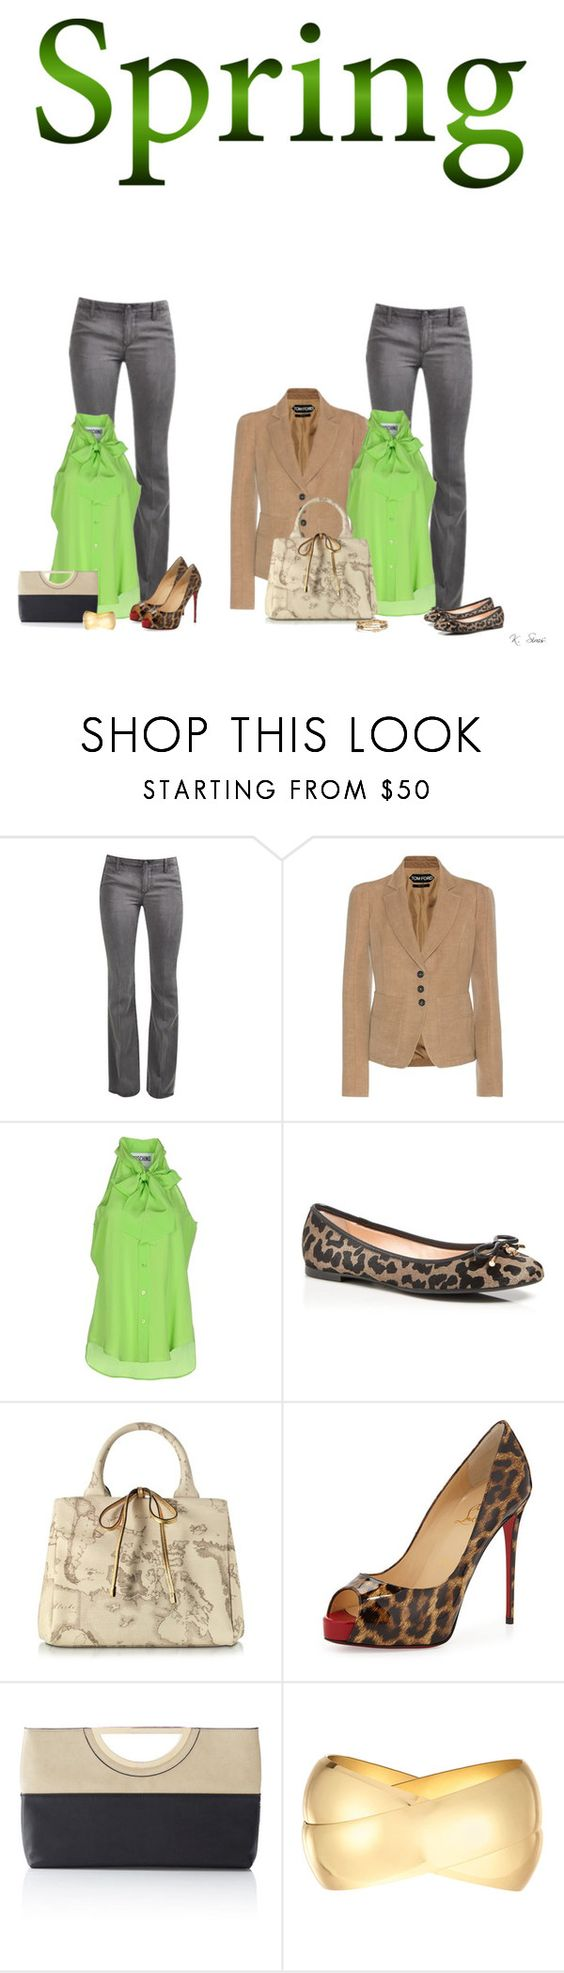 """""""Day to Evening"""" by ksims-1 ❤ liked on Polyvore featuring Tom Ford, Moschino, Kate Spade, Alviero Martini 1° Classe, Christian Louboutin, The Limited, Kenneth Jay Lane, Melinda Maria and daytoevening"""